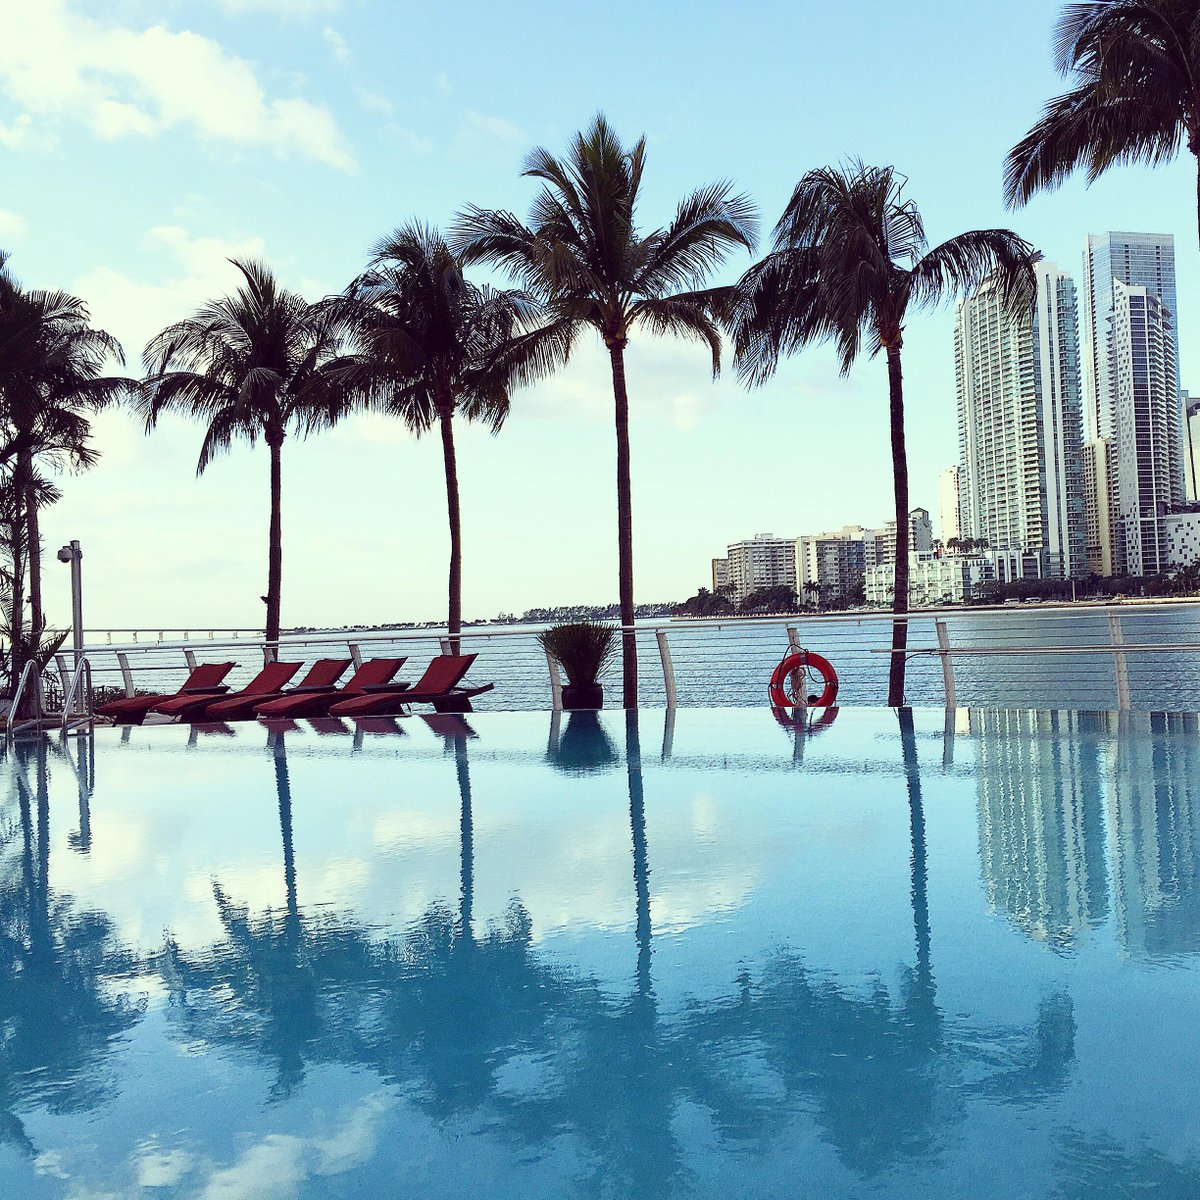 Great article! RT @Myscoopus: Miami, A World Class Destination In Every Way http://t.co/eV3pURKCxT @MO_MIAMI http://t.co/GaLXBFzKDi